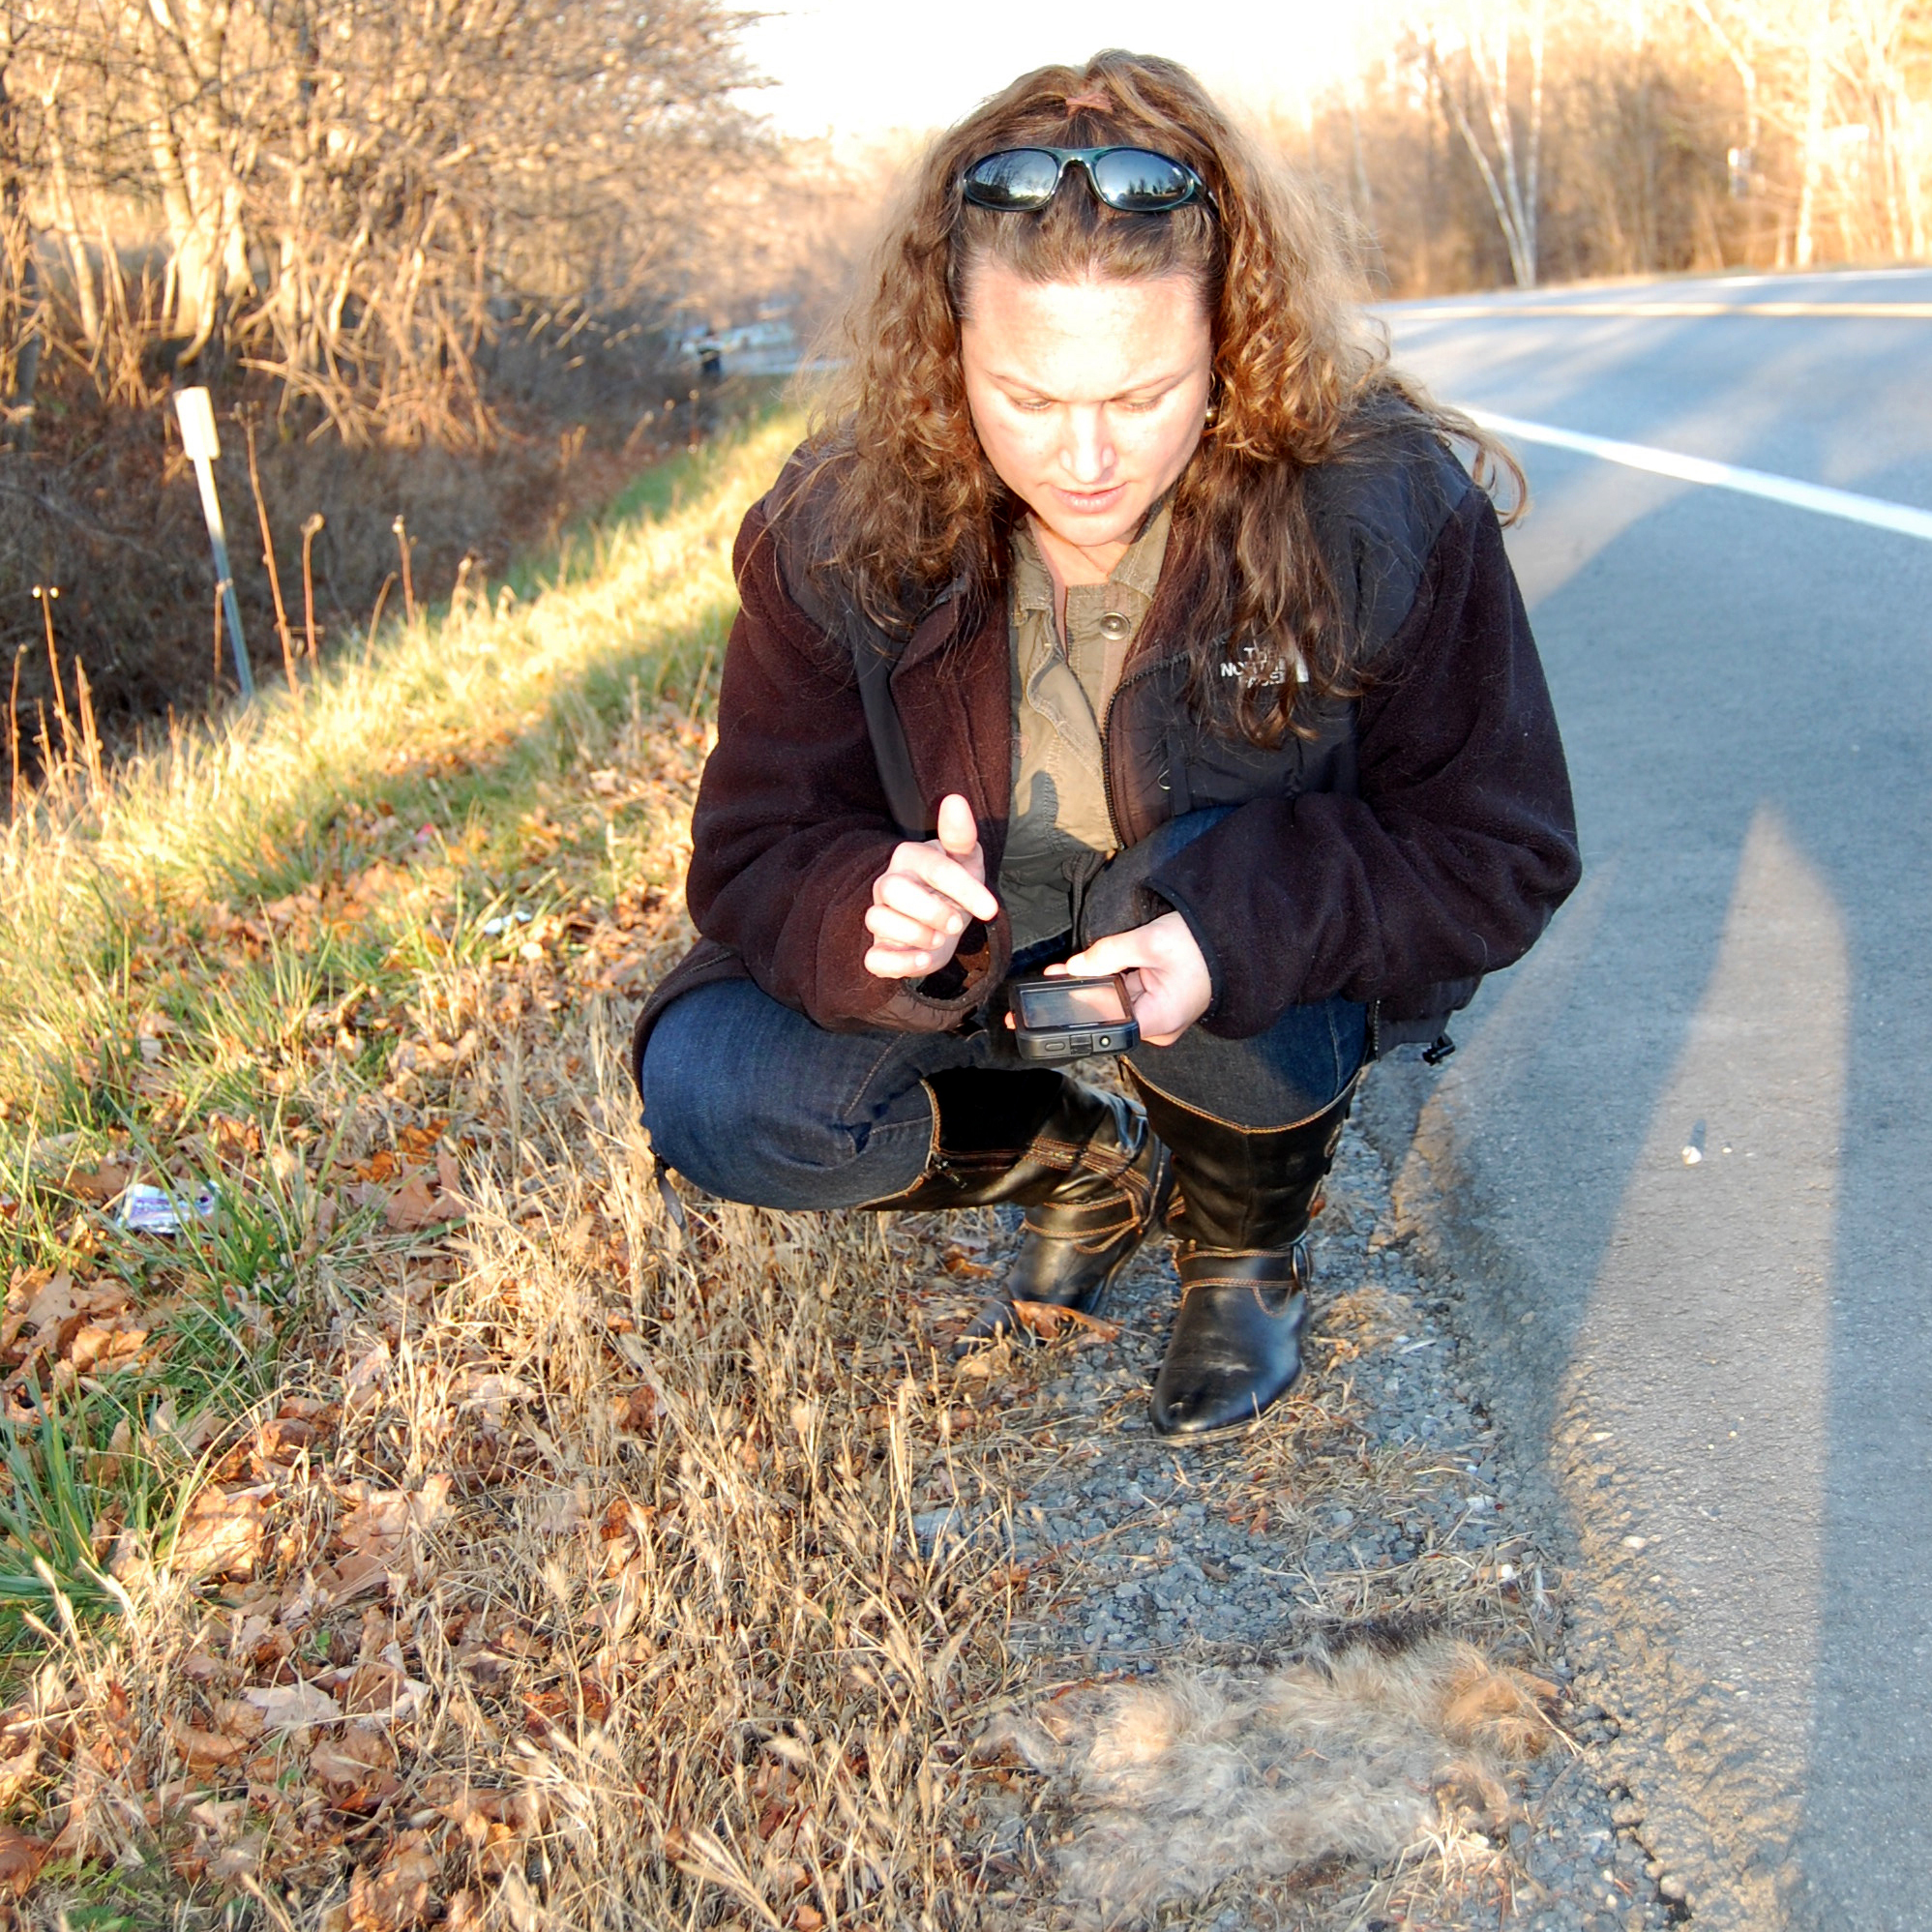 Danielle Garneau, wildlife ecologist with the State University of New York at Plattsburgh, uploads data about roadkill onto her smartphone.